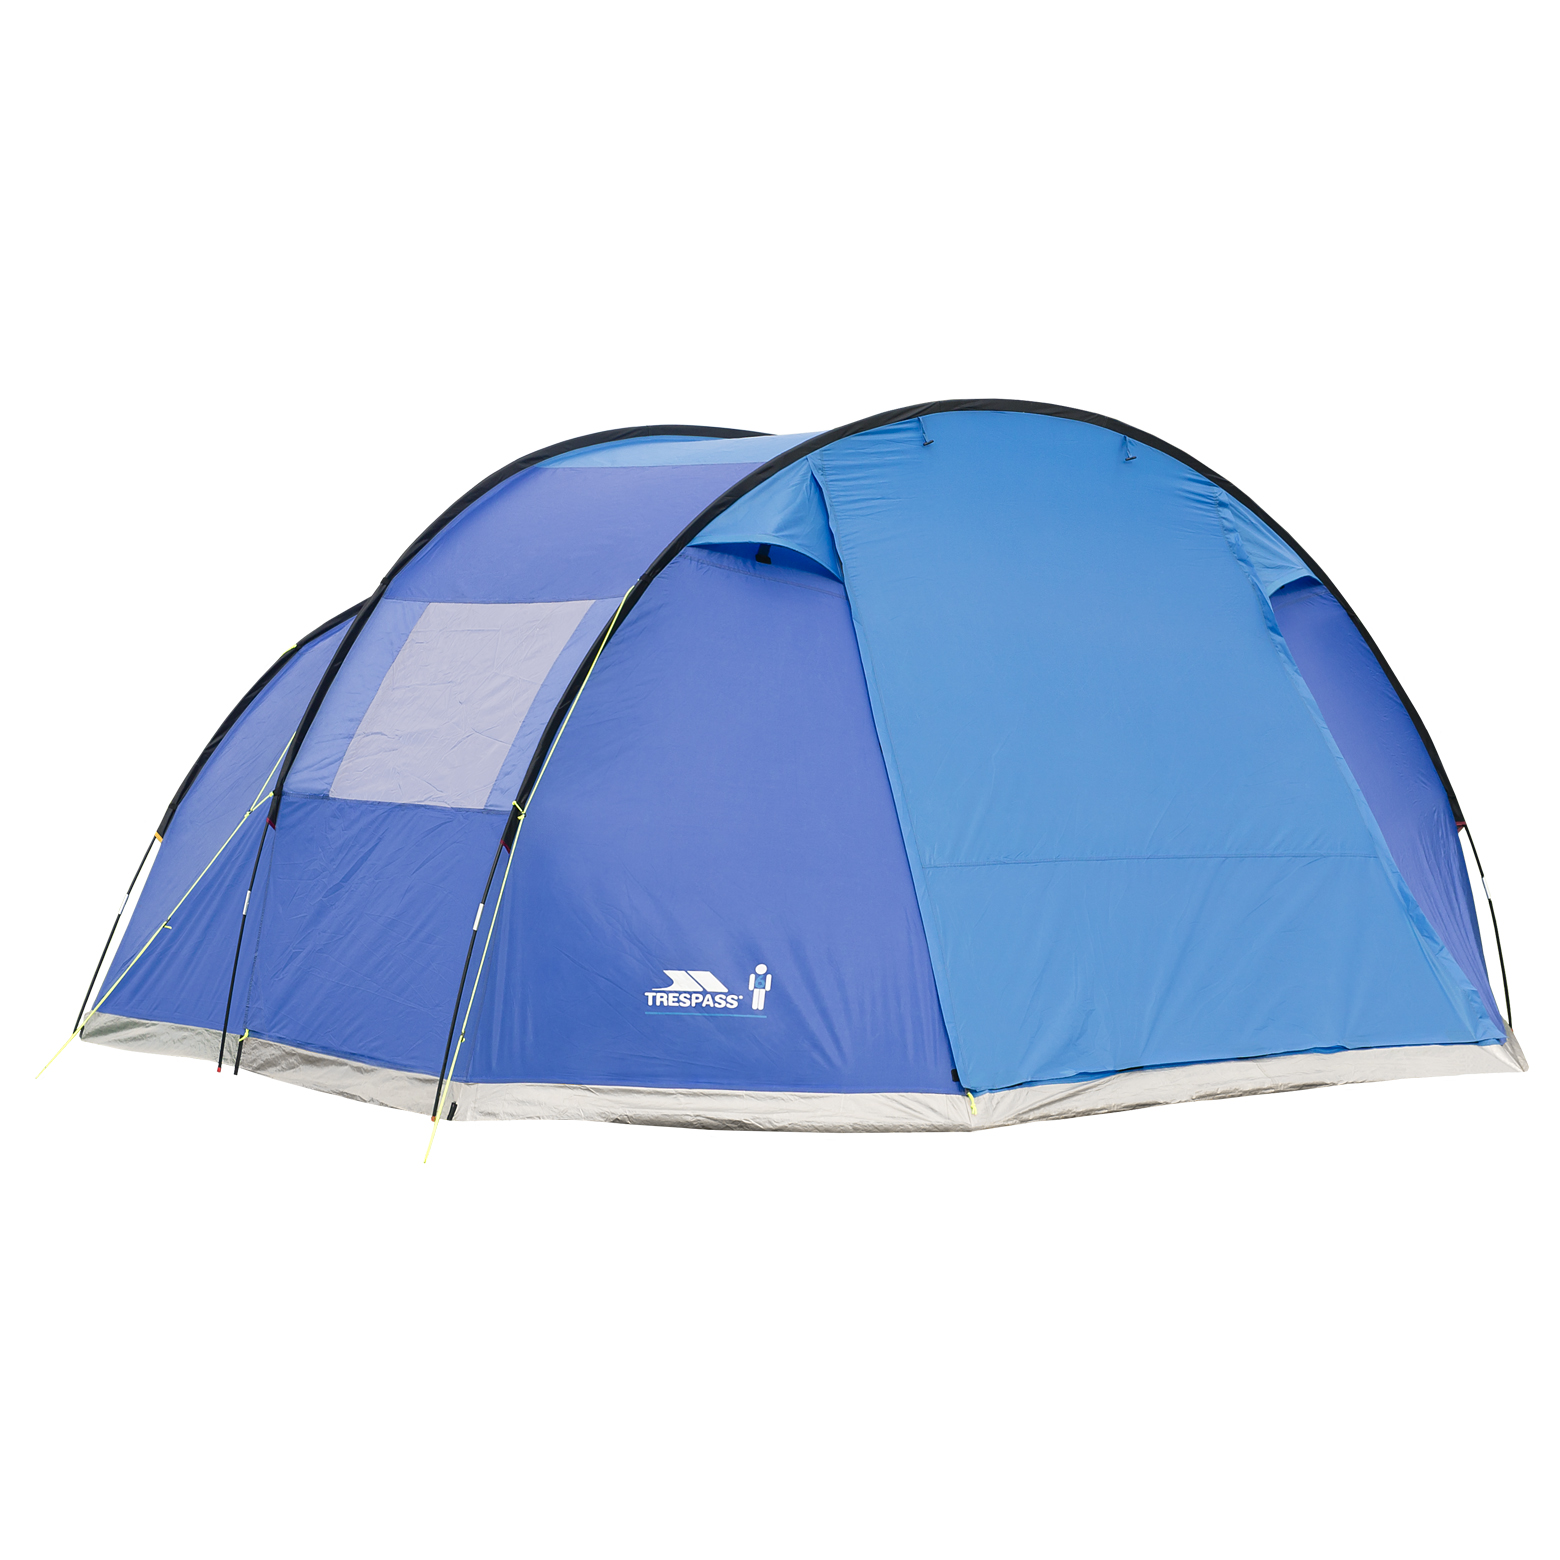 Trespass-Torrisdale-6-Man-Camping-Tent-2-Bedrooms-Free-Next-Day-Delivery thumbnail 7